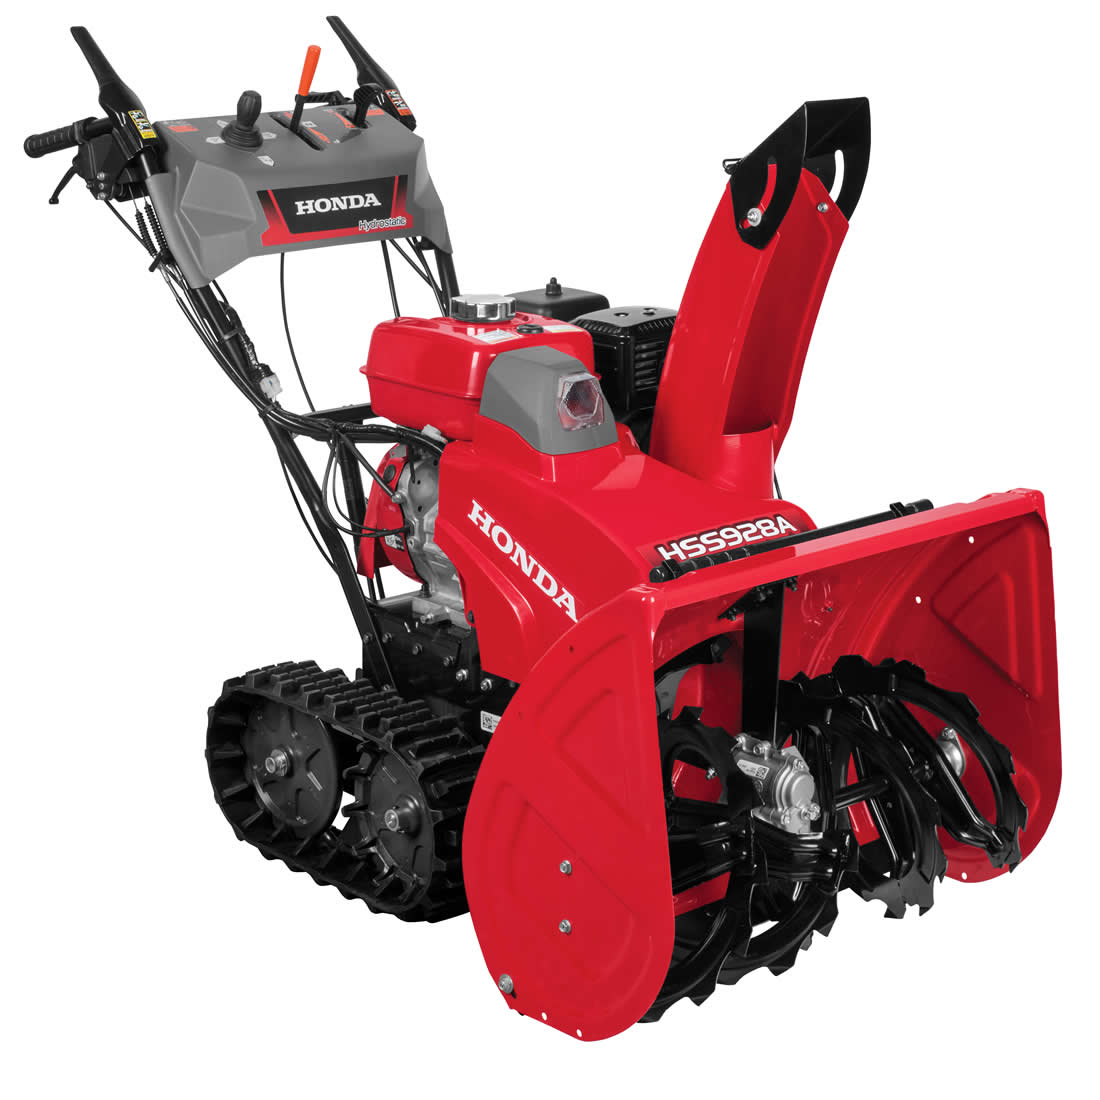 Picture of Honda HSS928AAT Snow Blower, Gas, 270 cc Engine Displacement, OHV Engine, 2 -Stage, 52 ft Throw